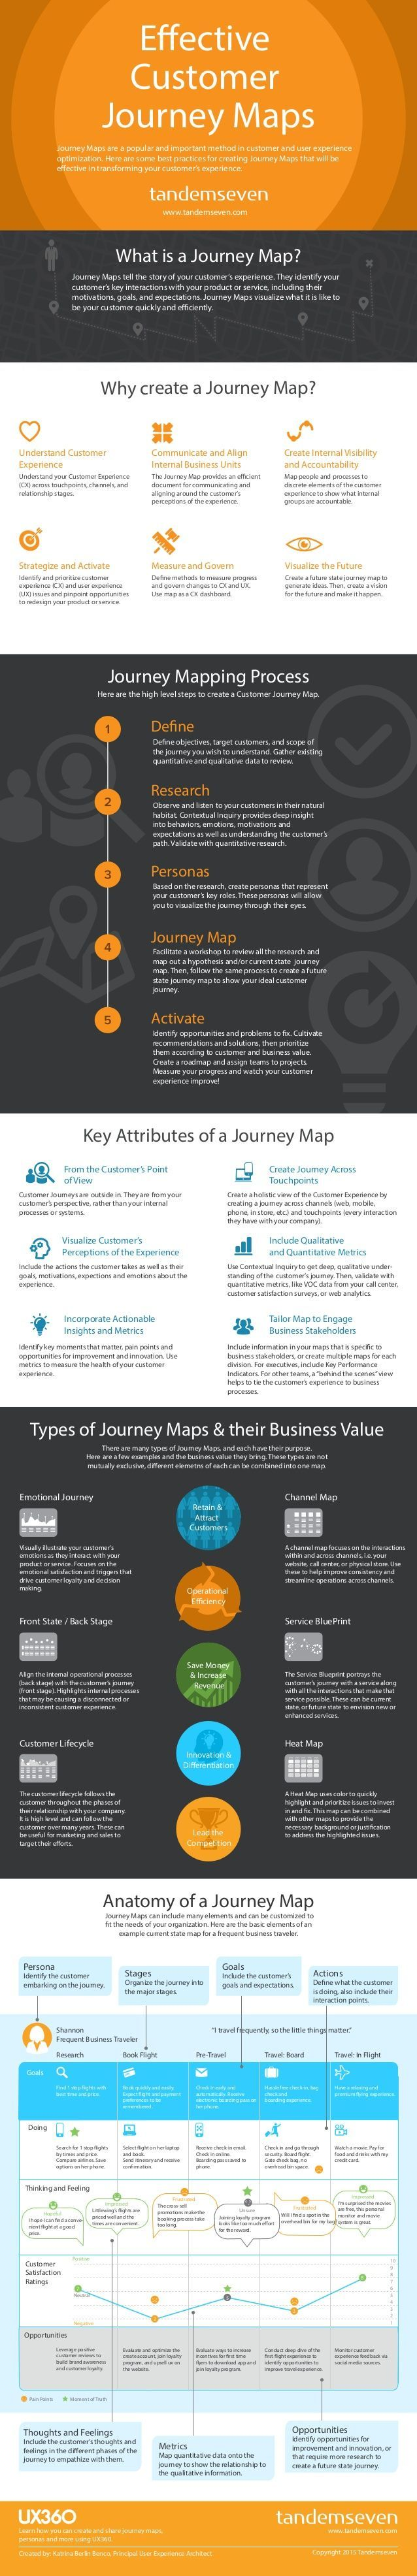 Journey Mapping Process Effective Customer Journey Maps Based on the research, create personas that represent your custome.... If you like UX, design, or design thinking, check out theuxblog.com